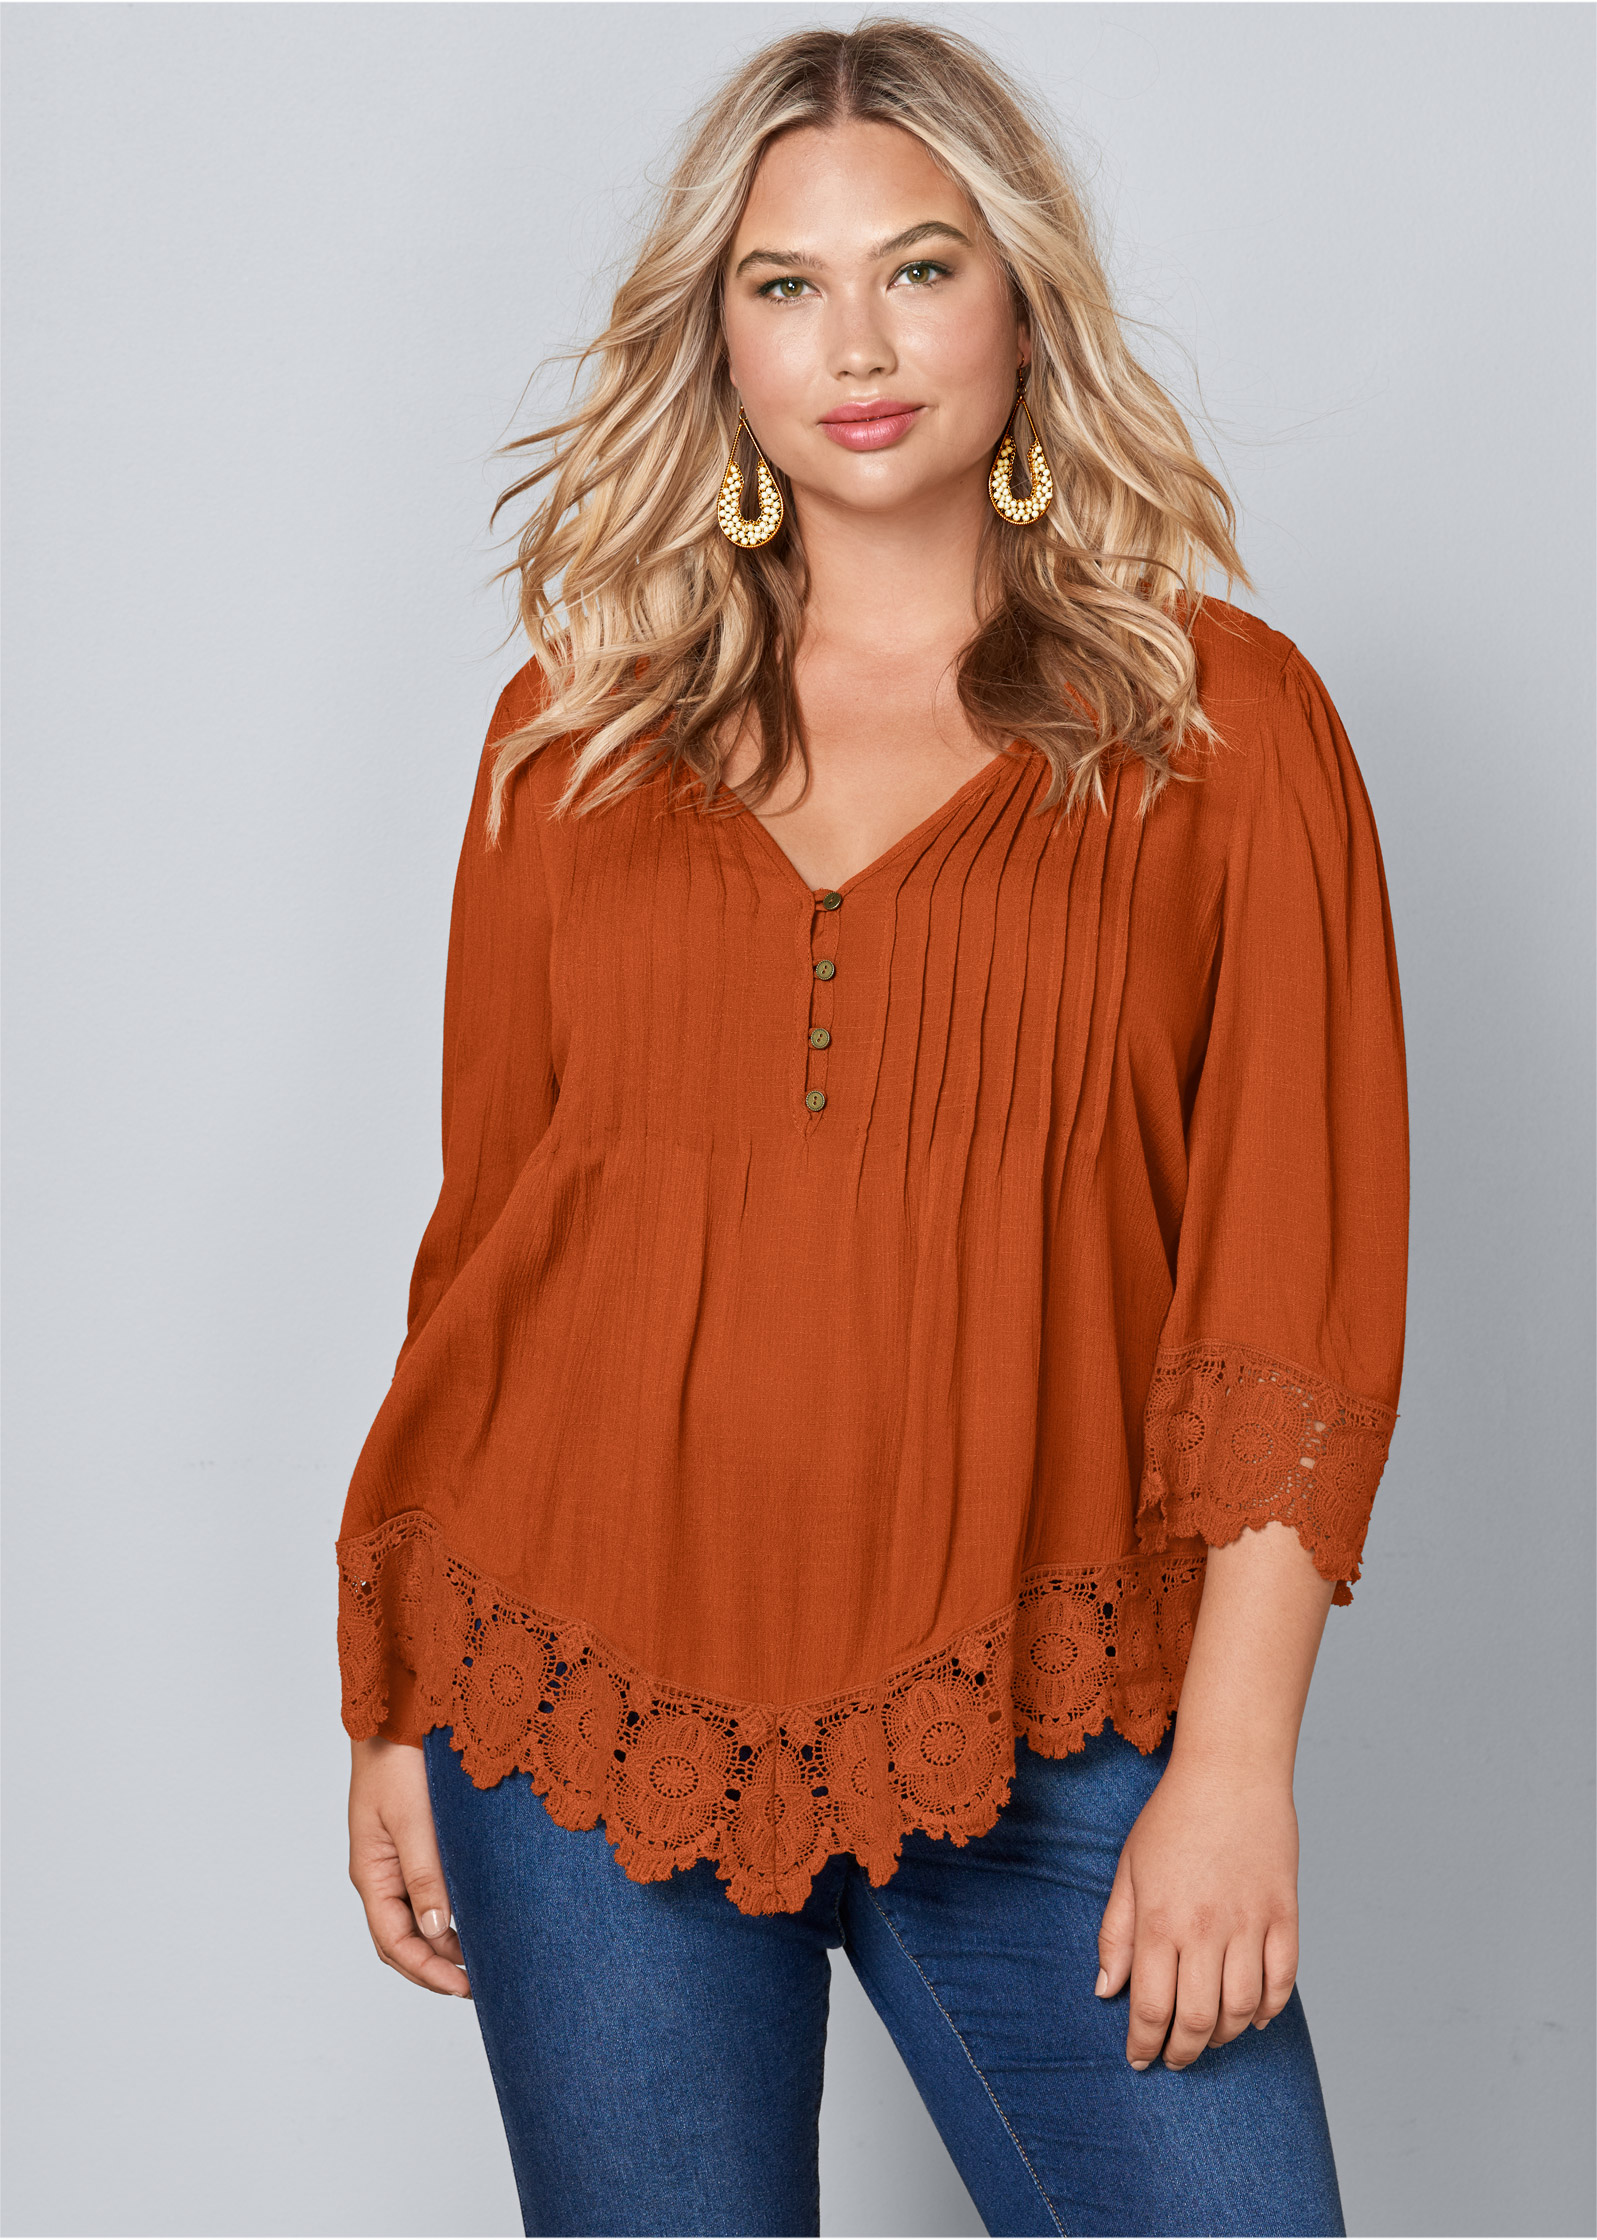 Tops Plus Size Insaat Mcpgroup Co